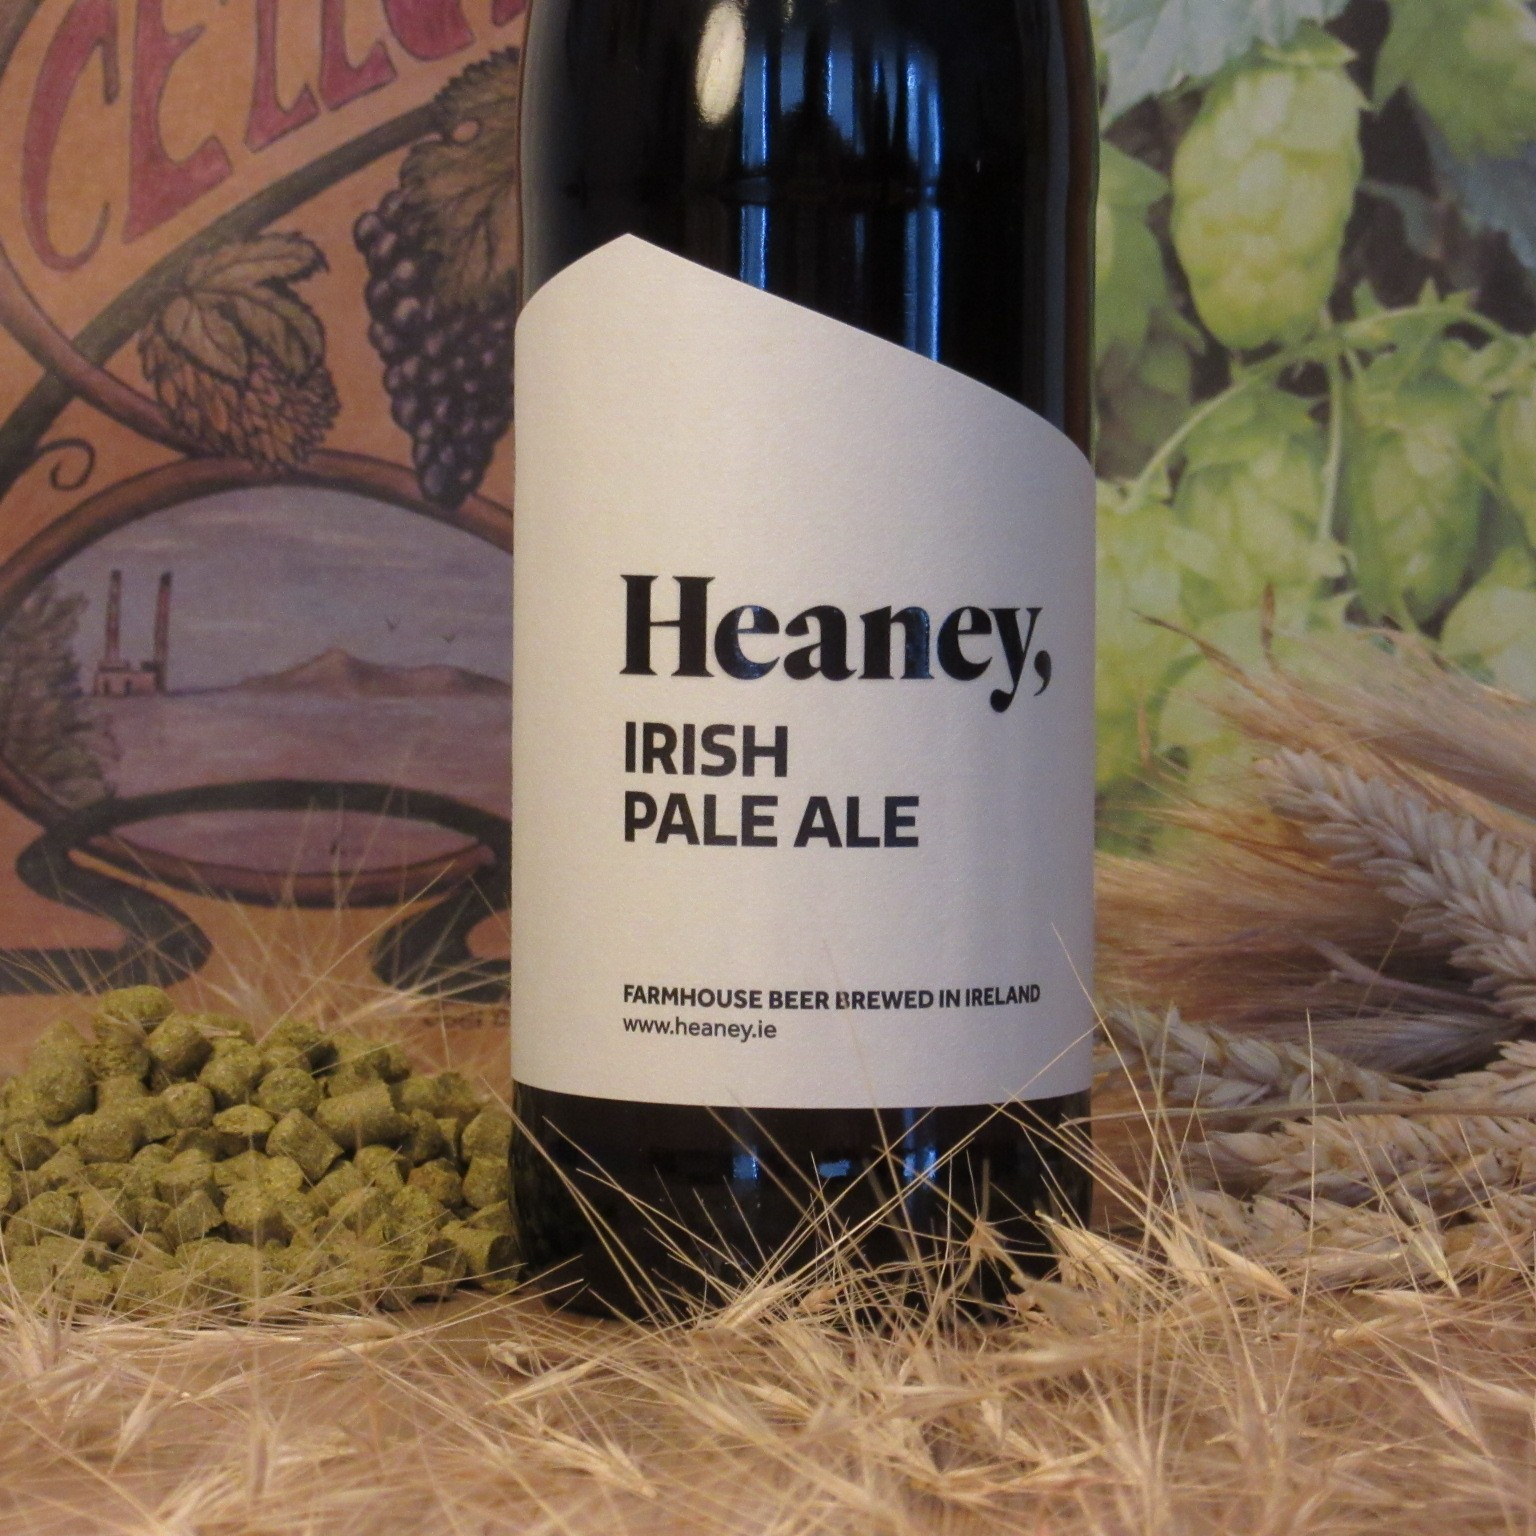 Heaney Irish Pale Ale